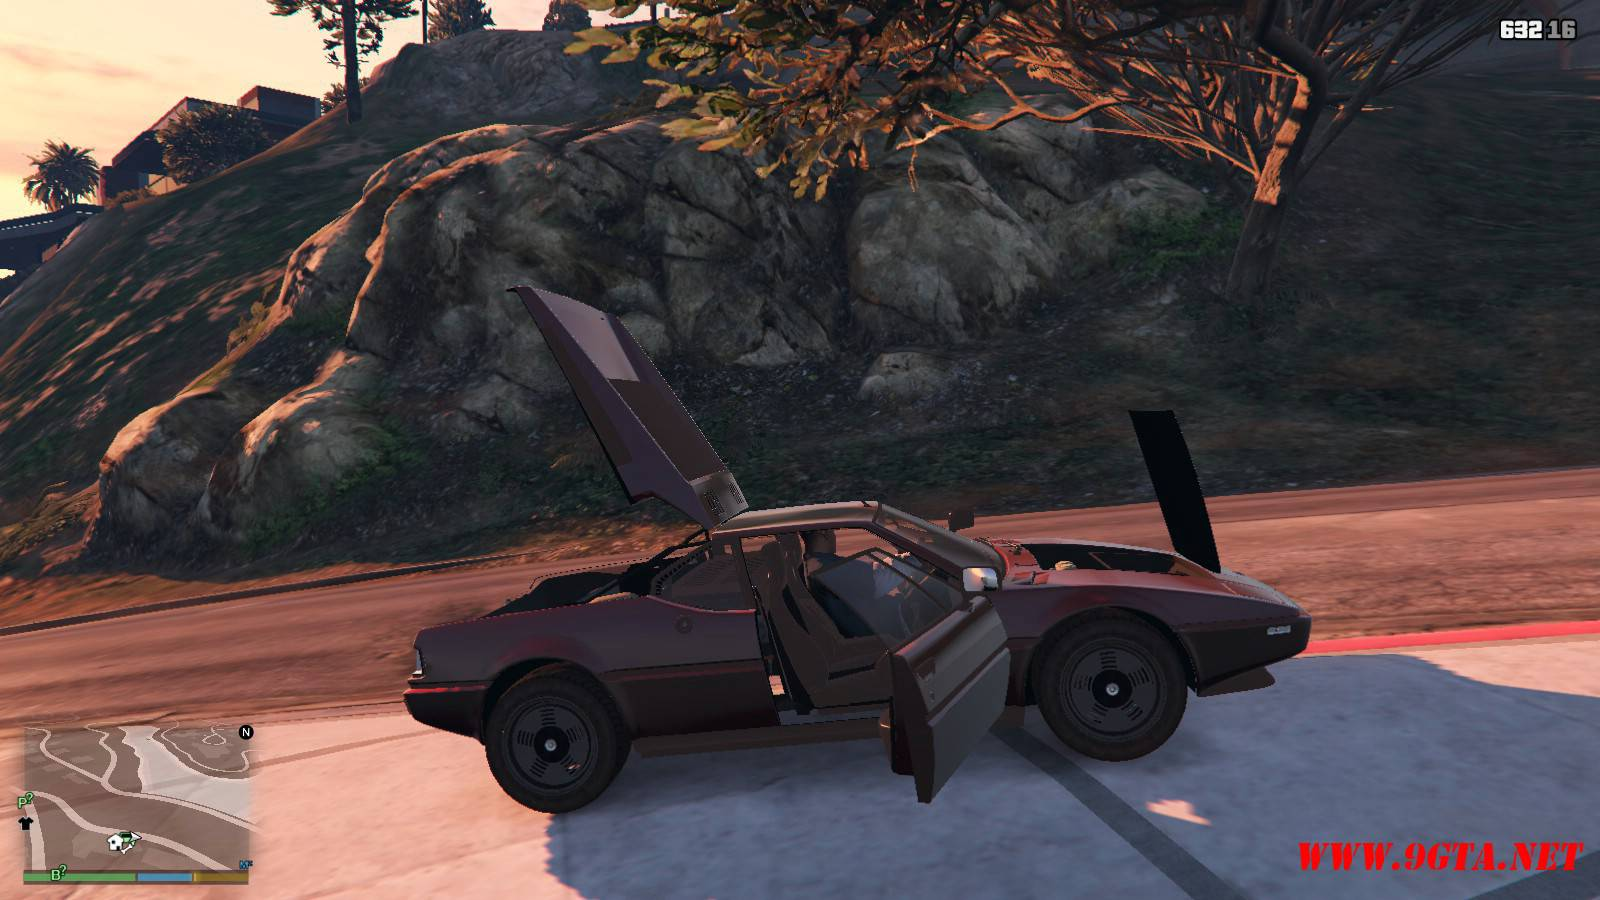 1981 BMW M1 v2.0 Mod For GTA5 (11)